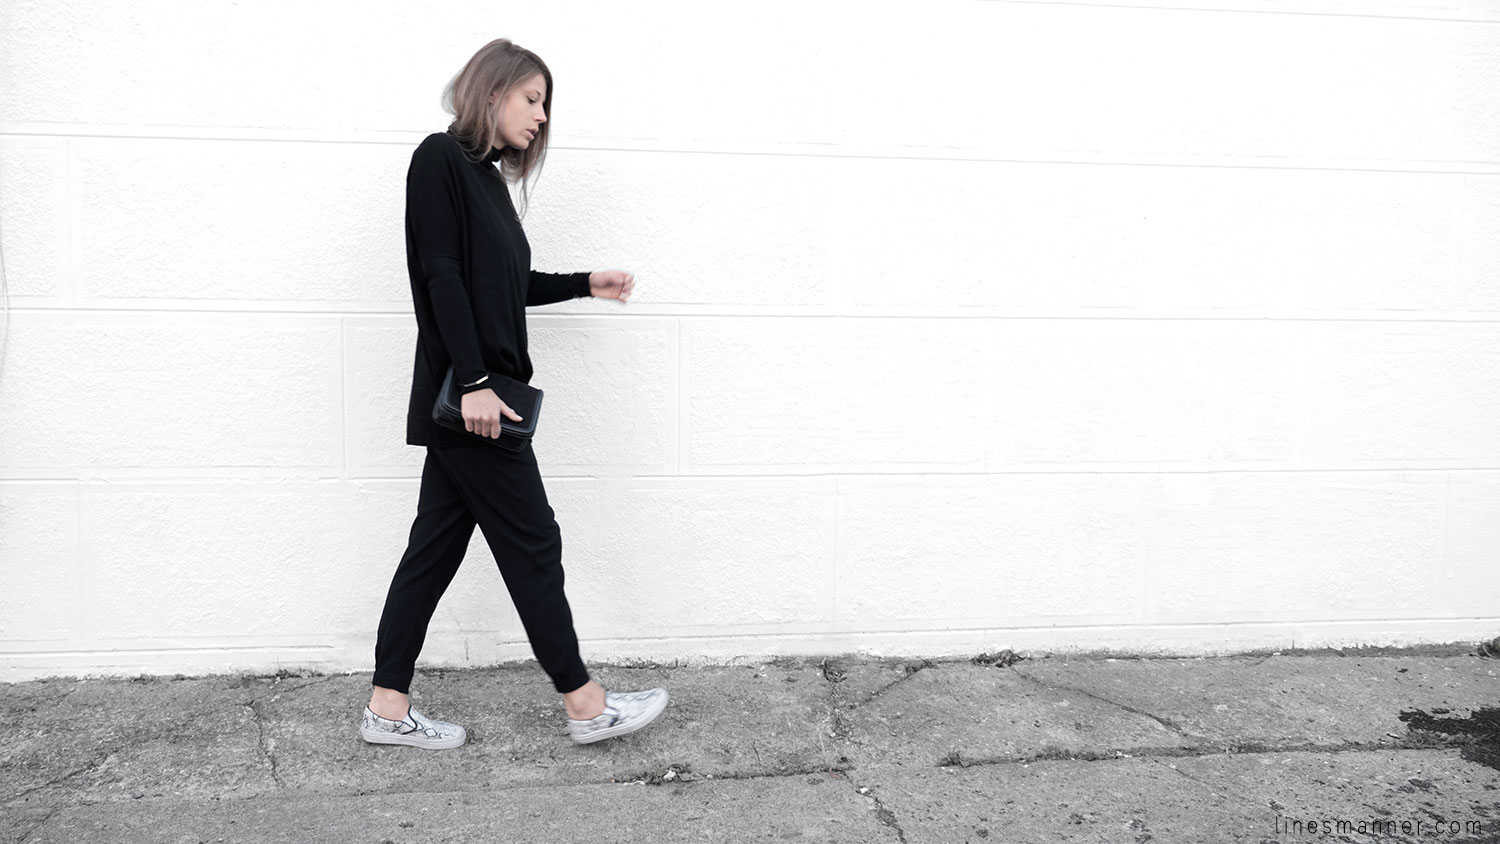 Lines-Manner-Minimalism-Details-Black-All_black_everything-Simplicity-Timeless-Modern-Monochrome-Essential-Basics-Staples_pieces-Outfit-Design-Effortless-11